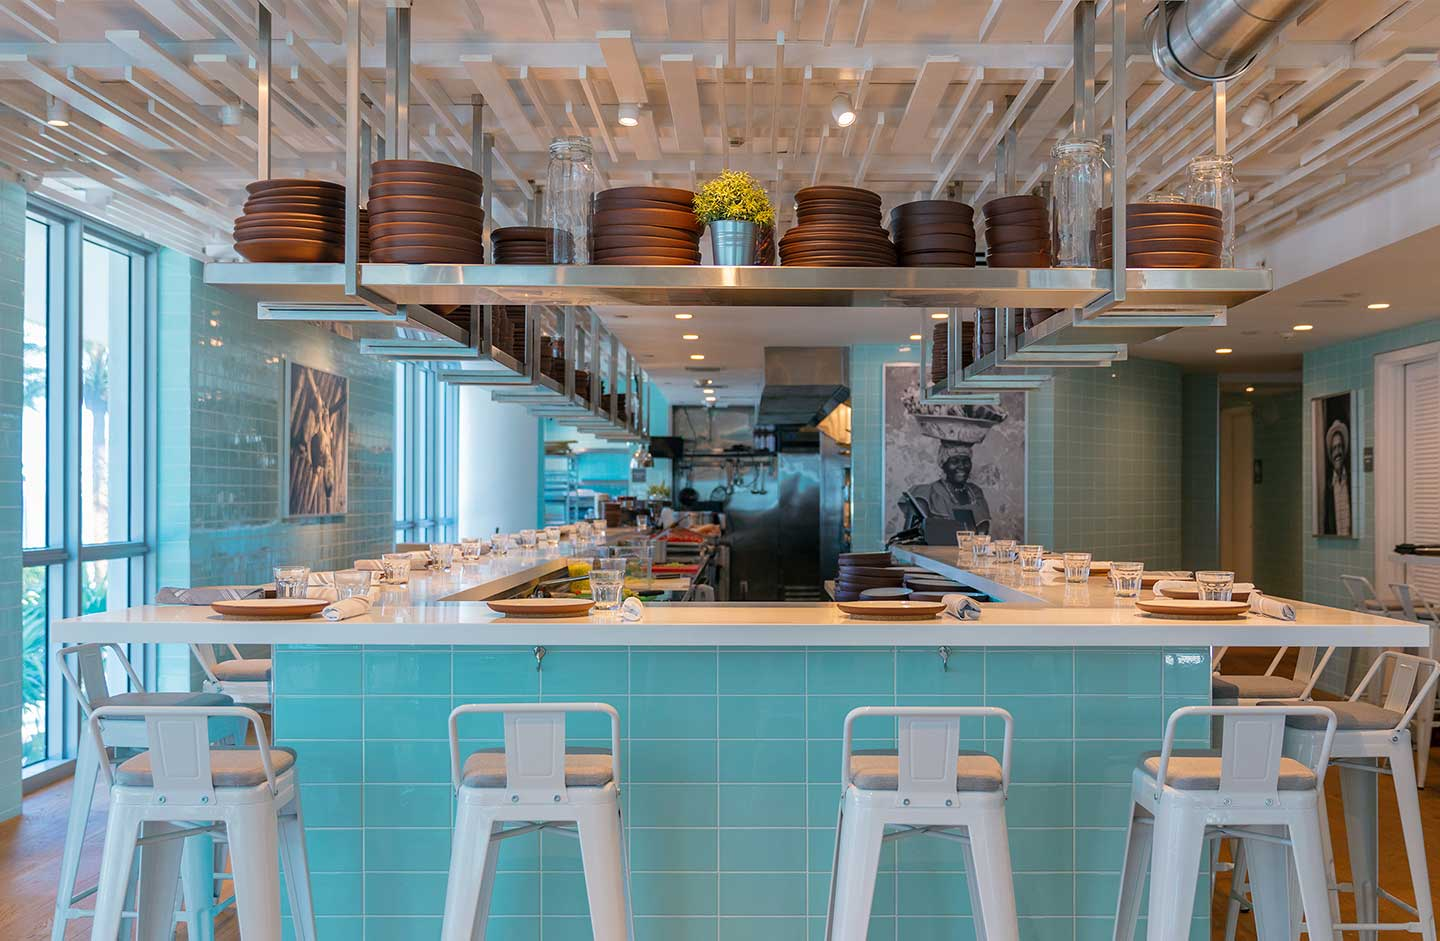 The Chowfather: First Date - Obra Kitchen Table (Miami)